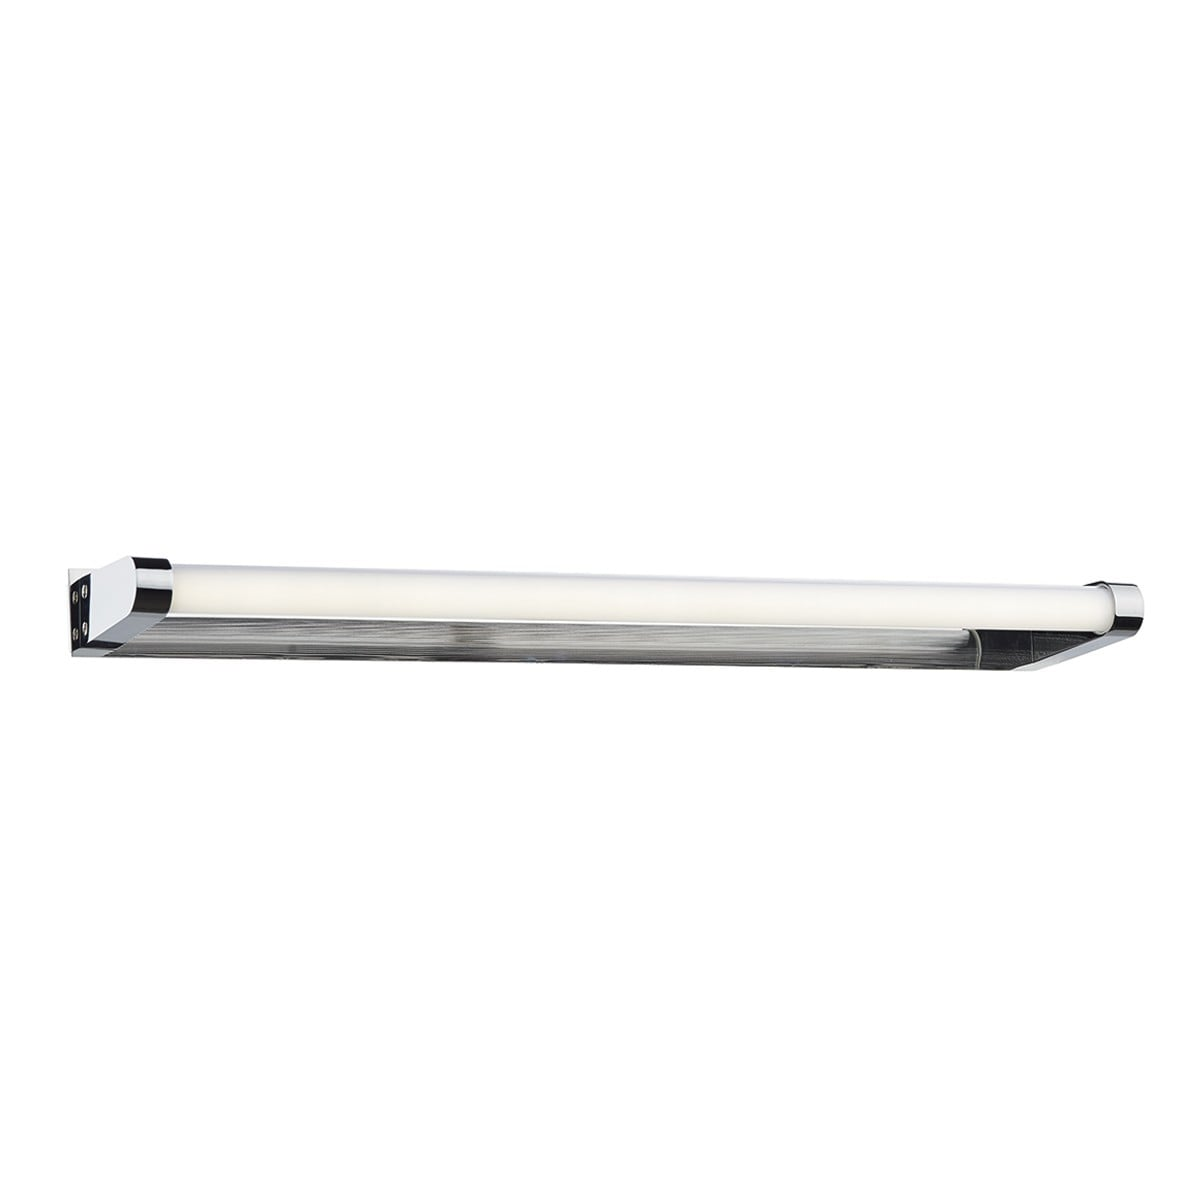 Dar FLU0750 Flute LED Bathroom Wall Light in Polished Chrome & White